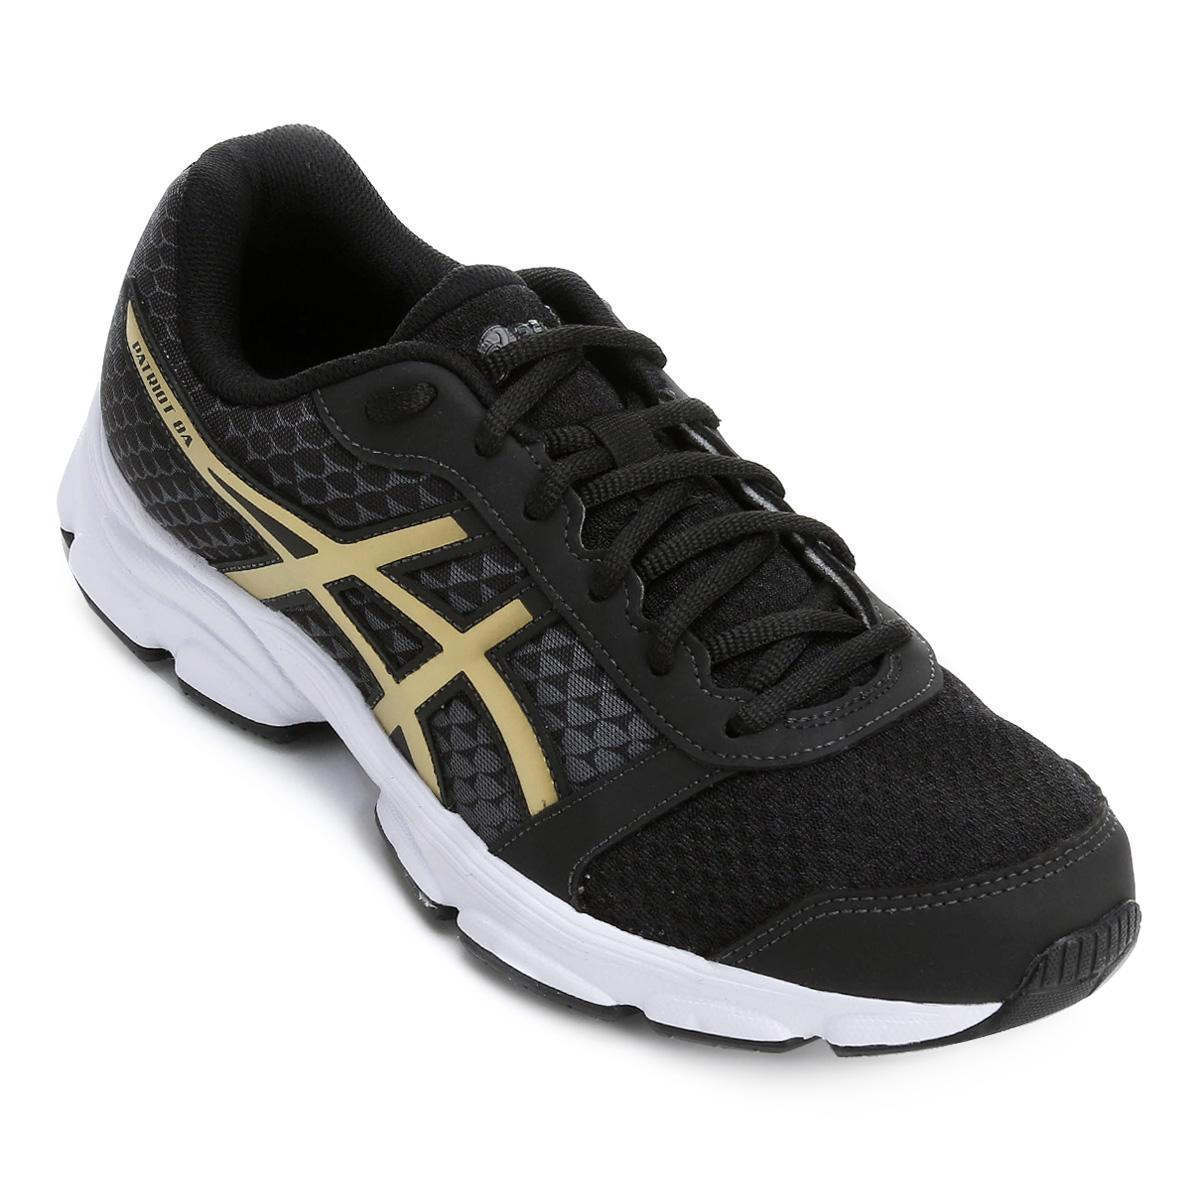 6a32cb200a0 tenis asics - Black Friday - Tênis Asics Patriot 8 - R 149